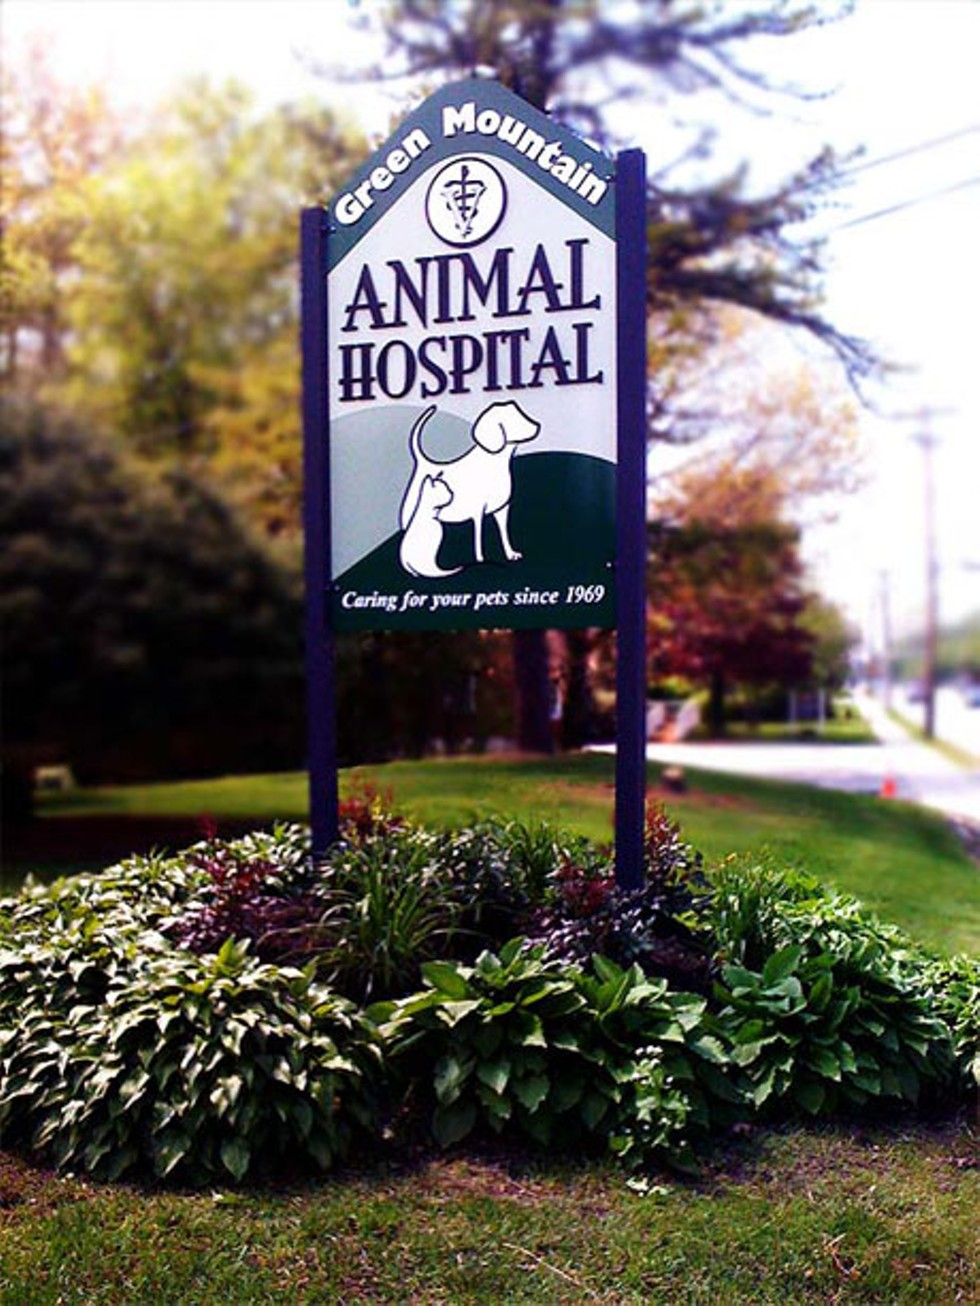 COURTESY OF GREEN MOUNTAIN ANIMAL HOSPITAL